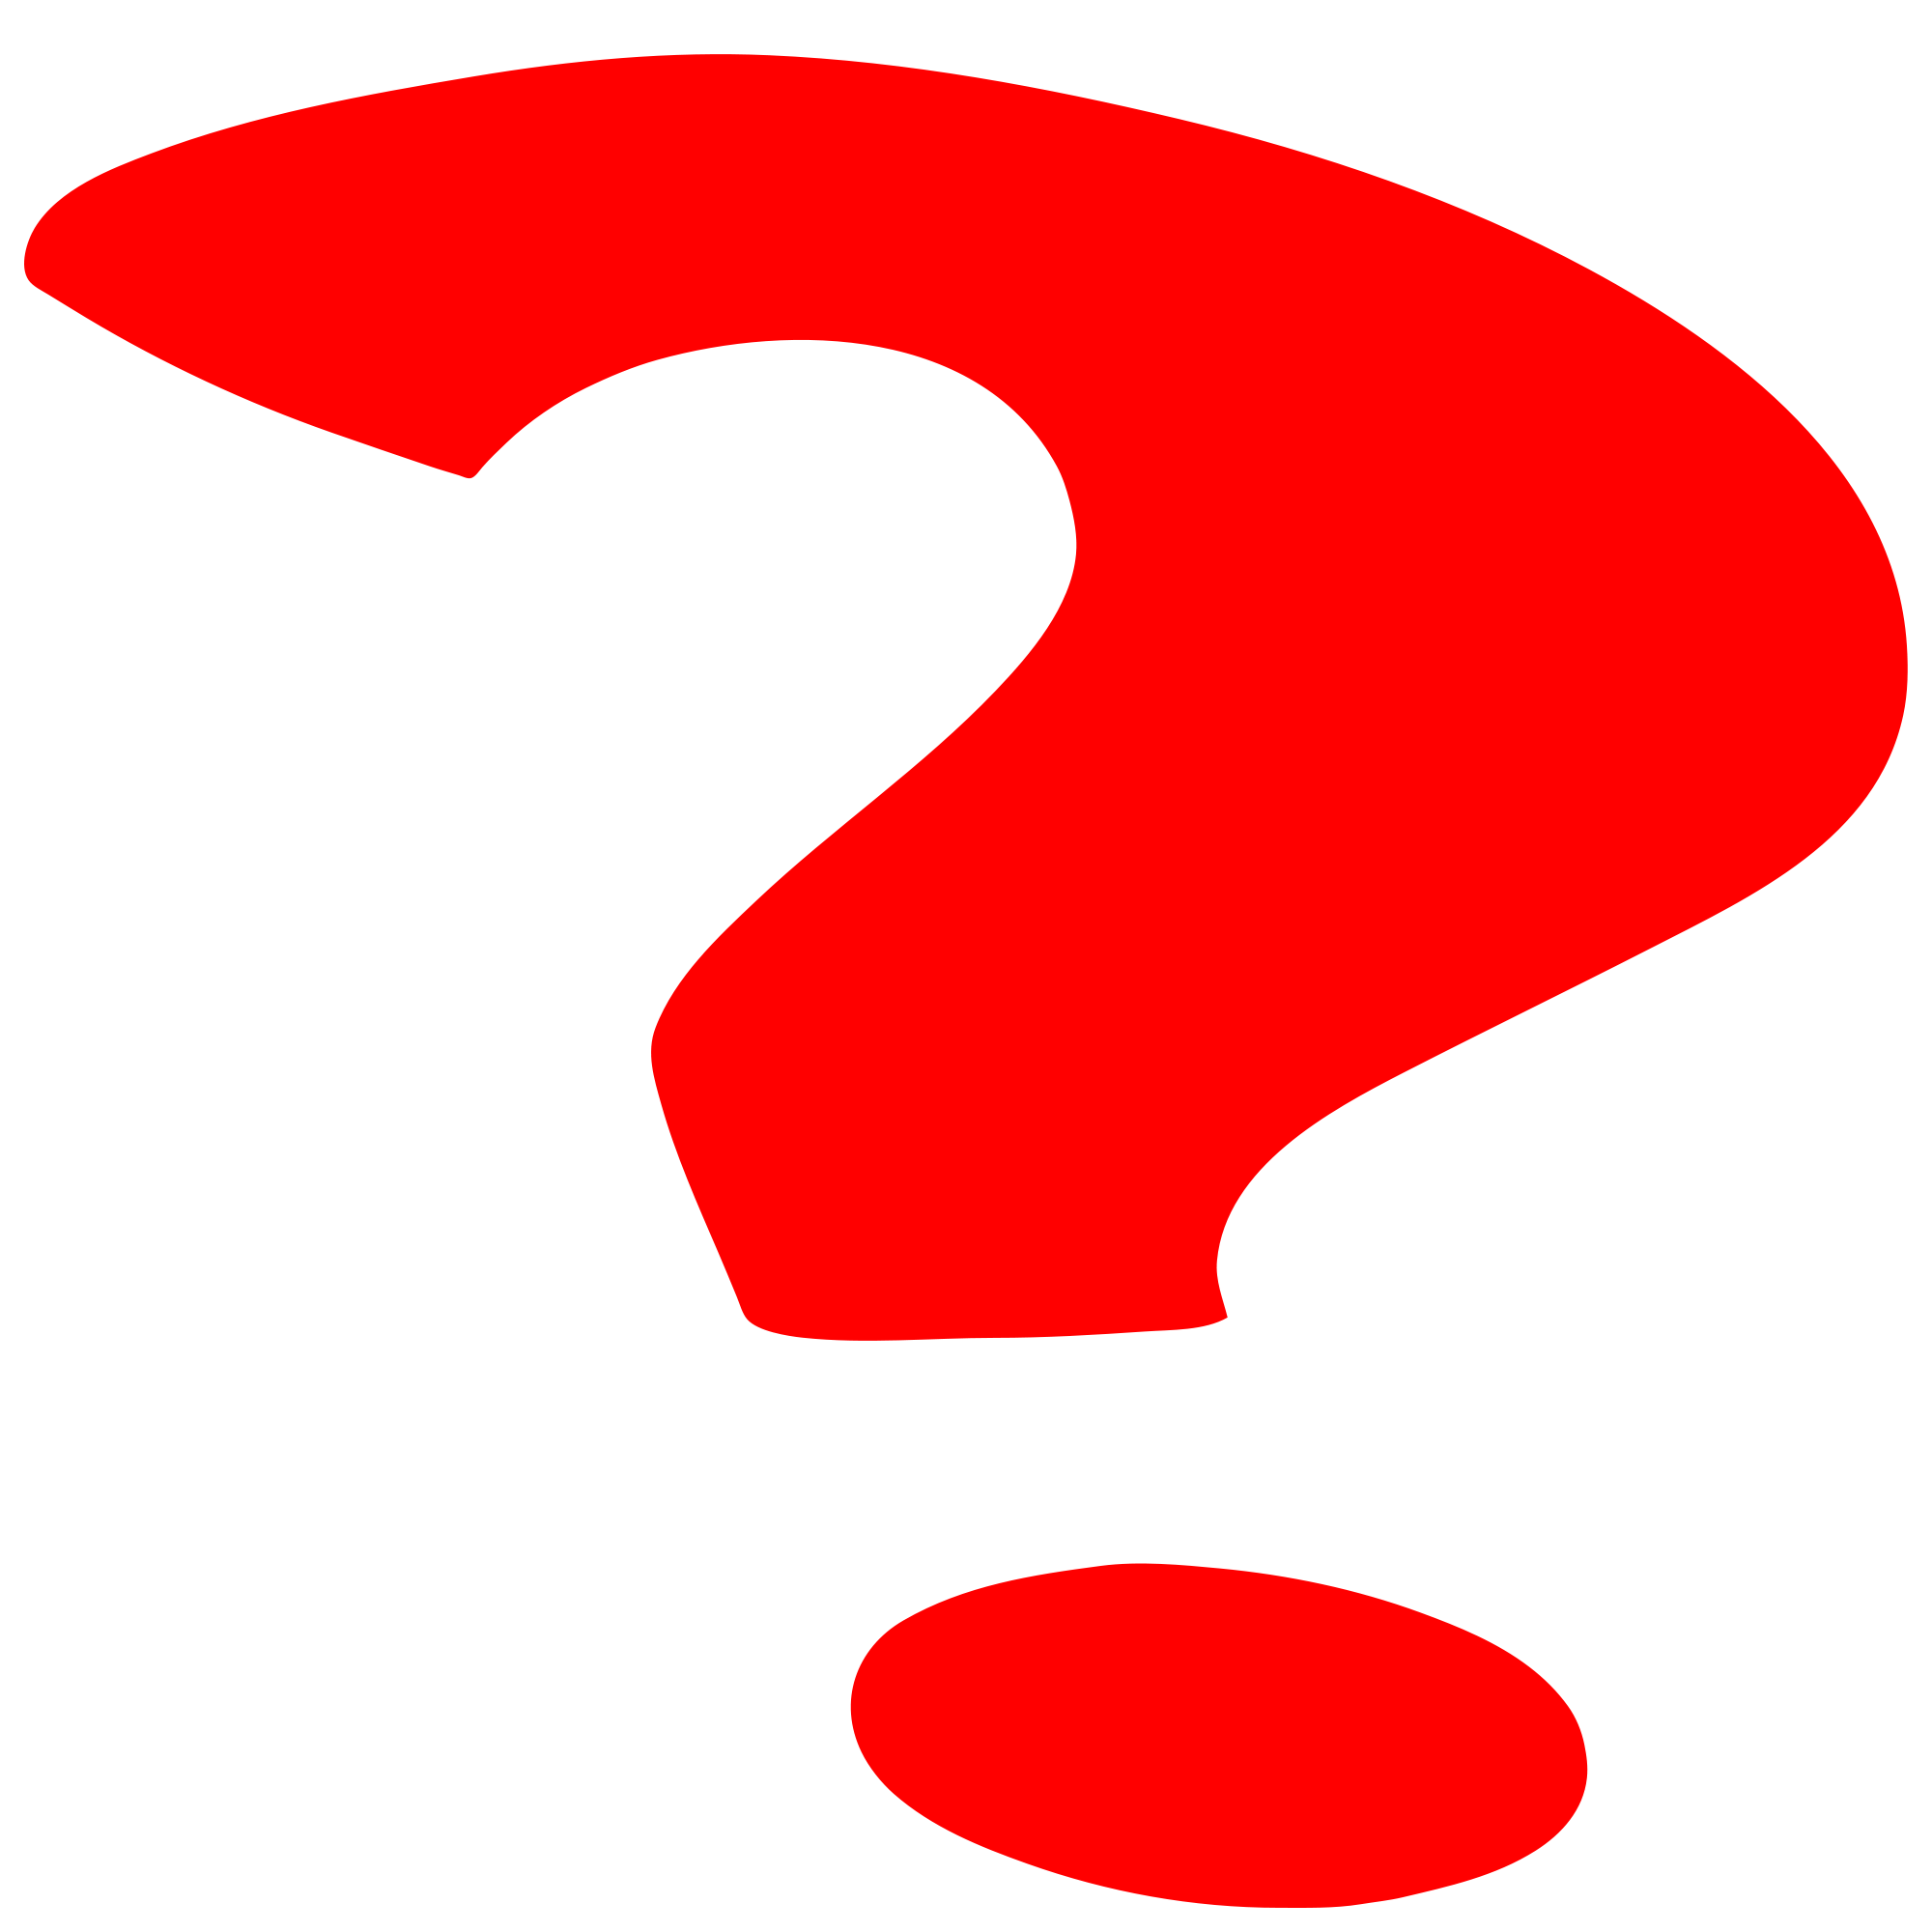 red question mark png